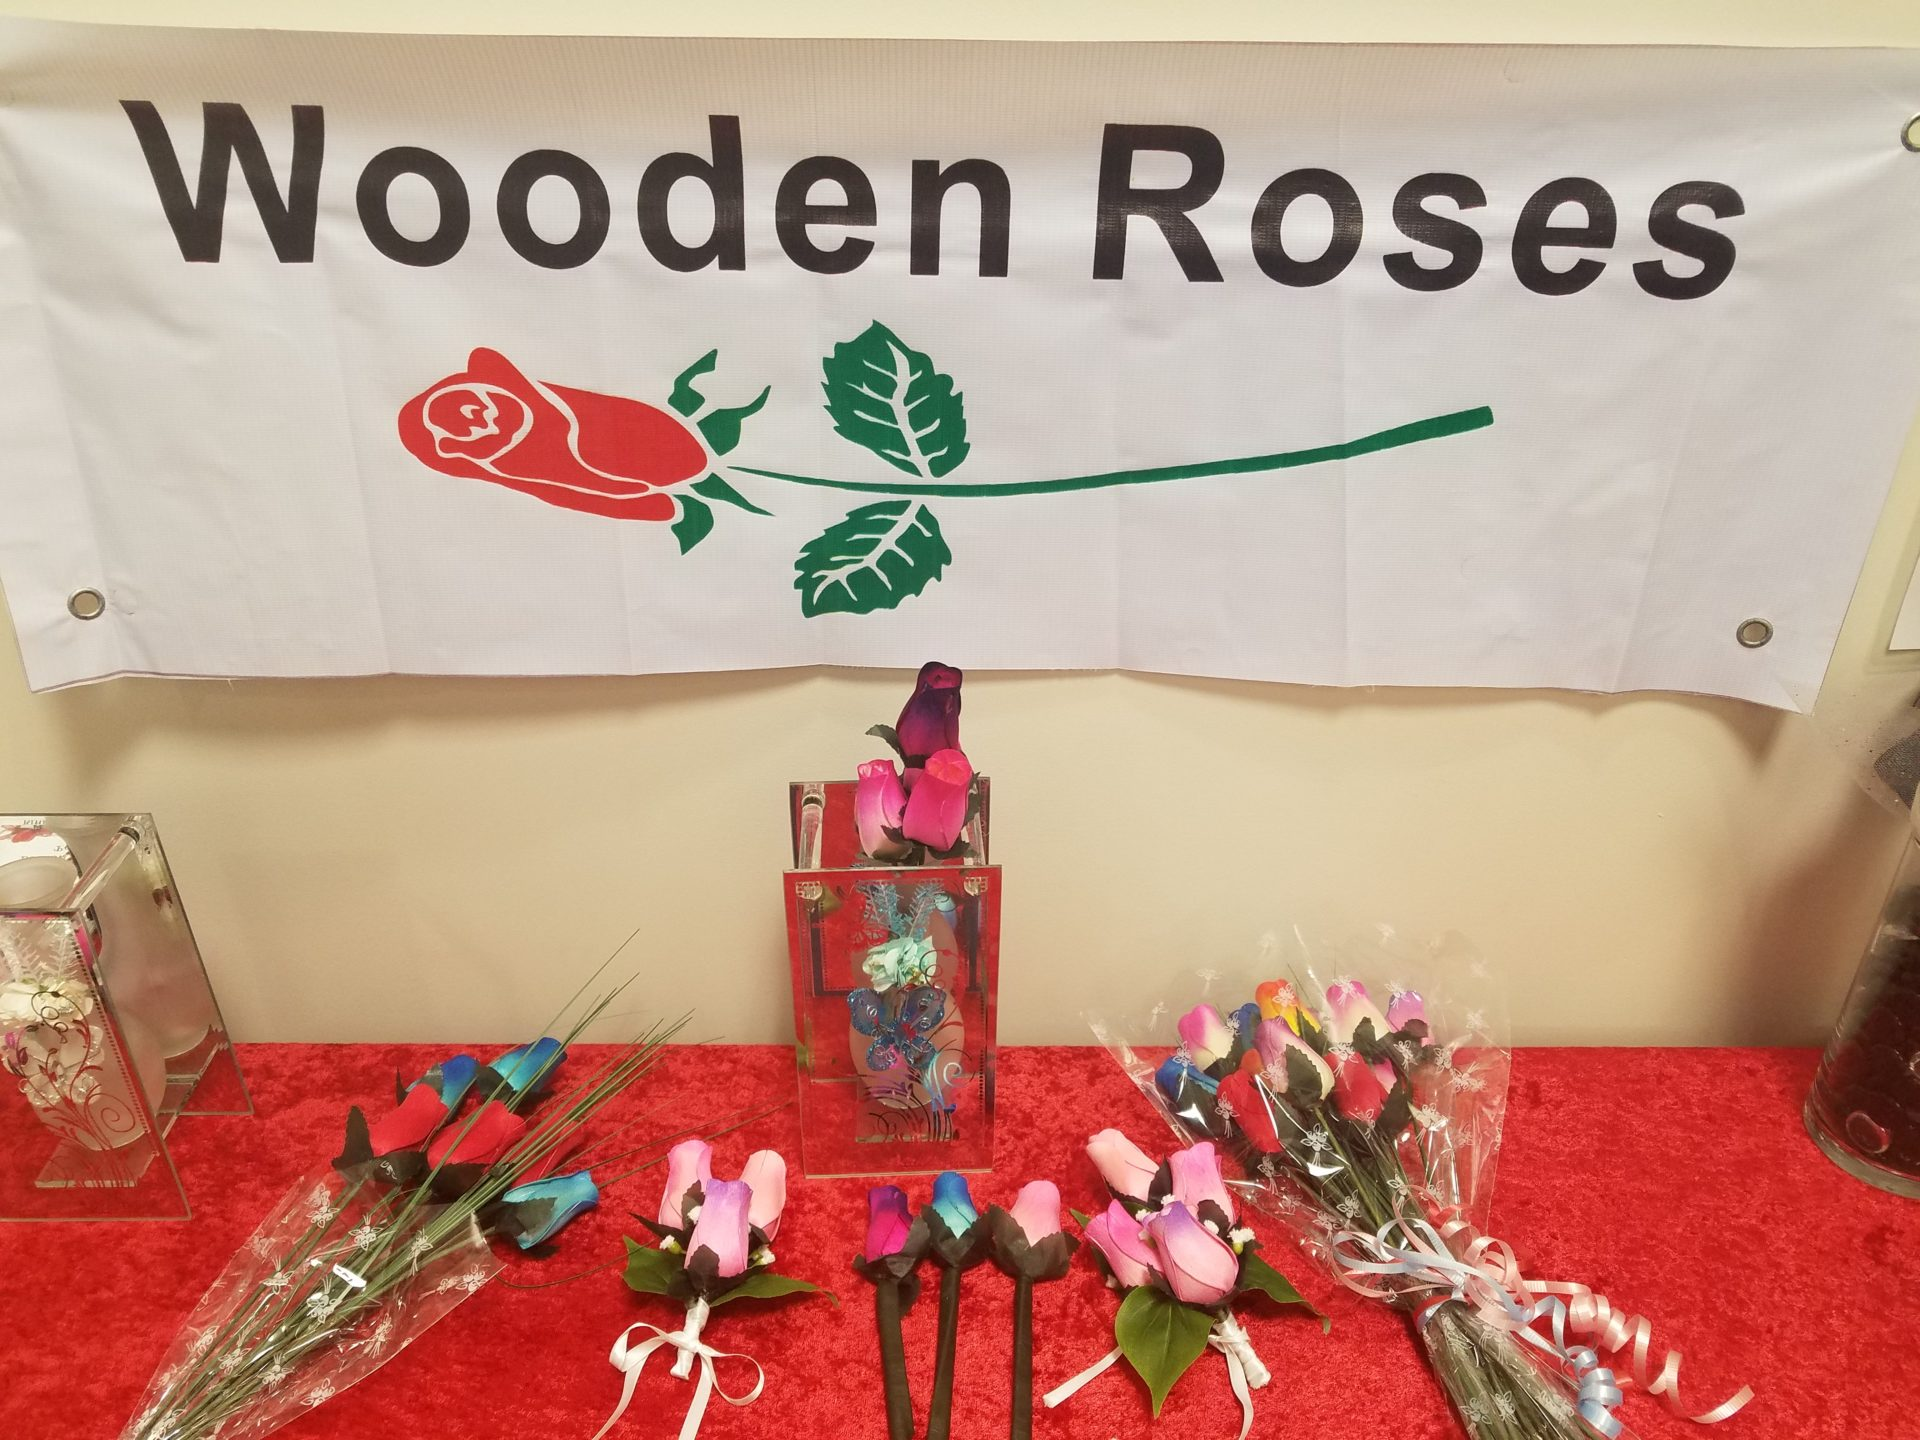 800 Wooden Roses